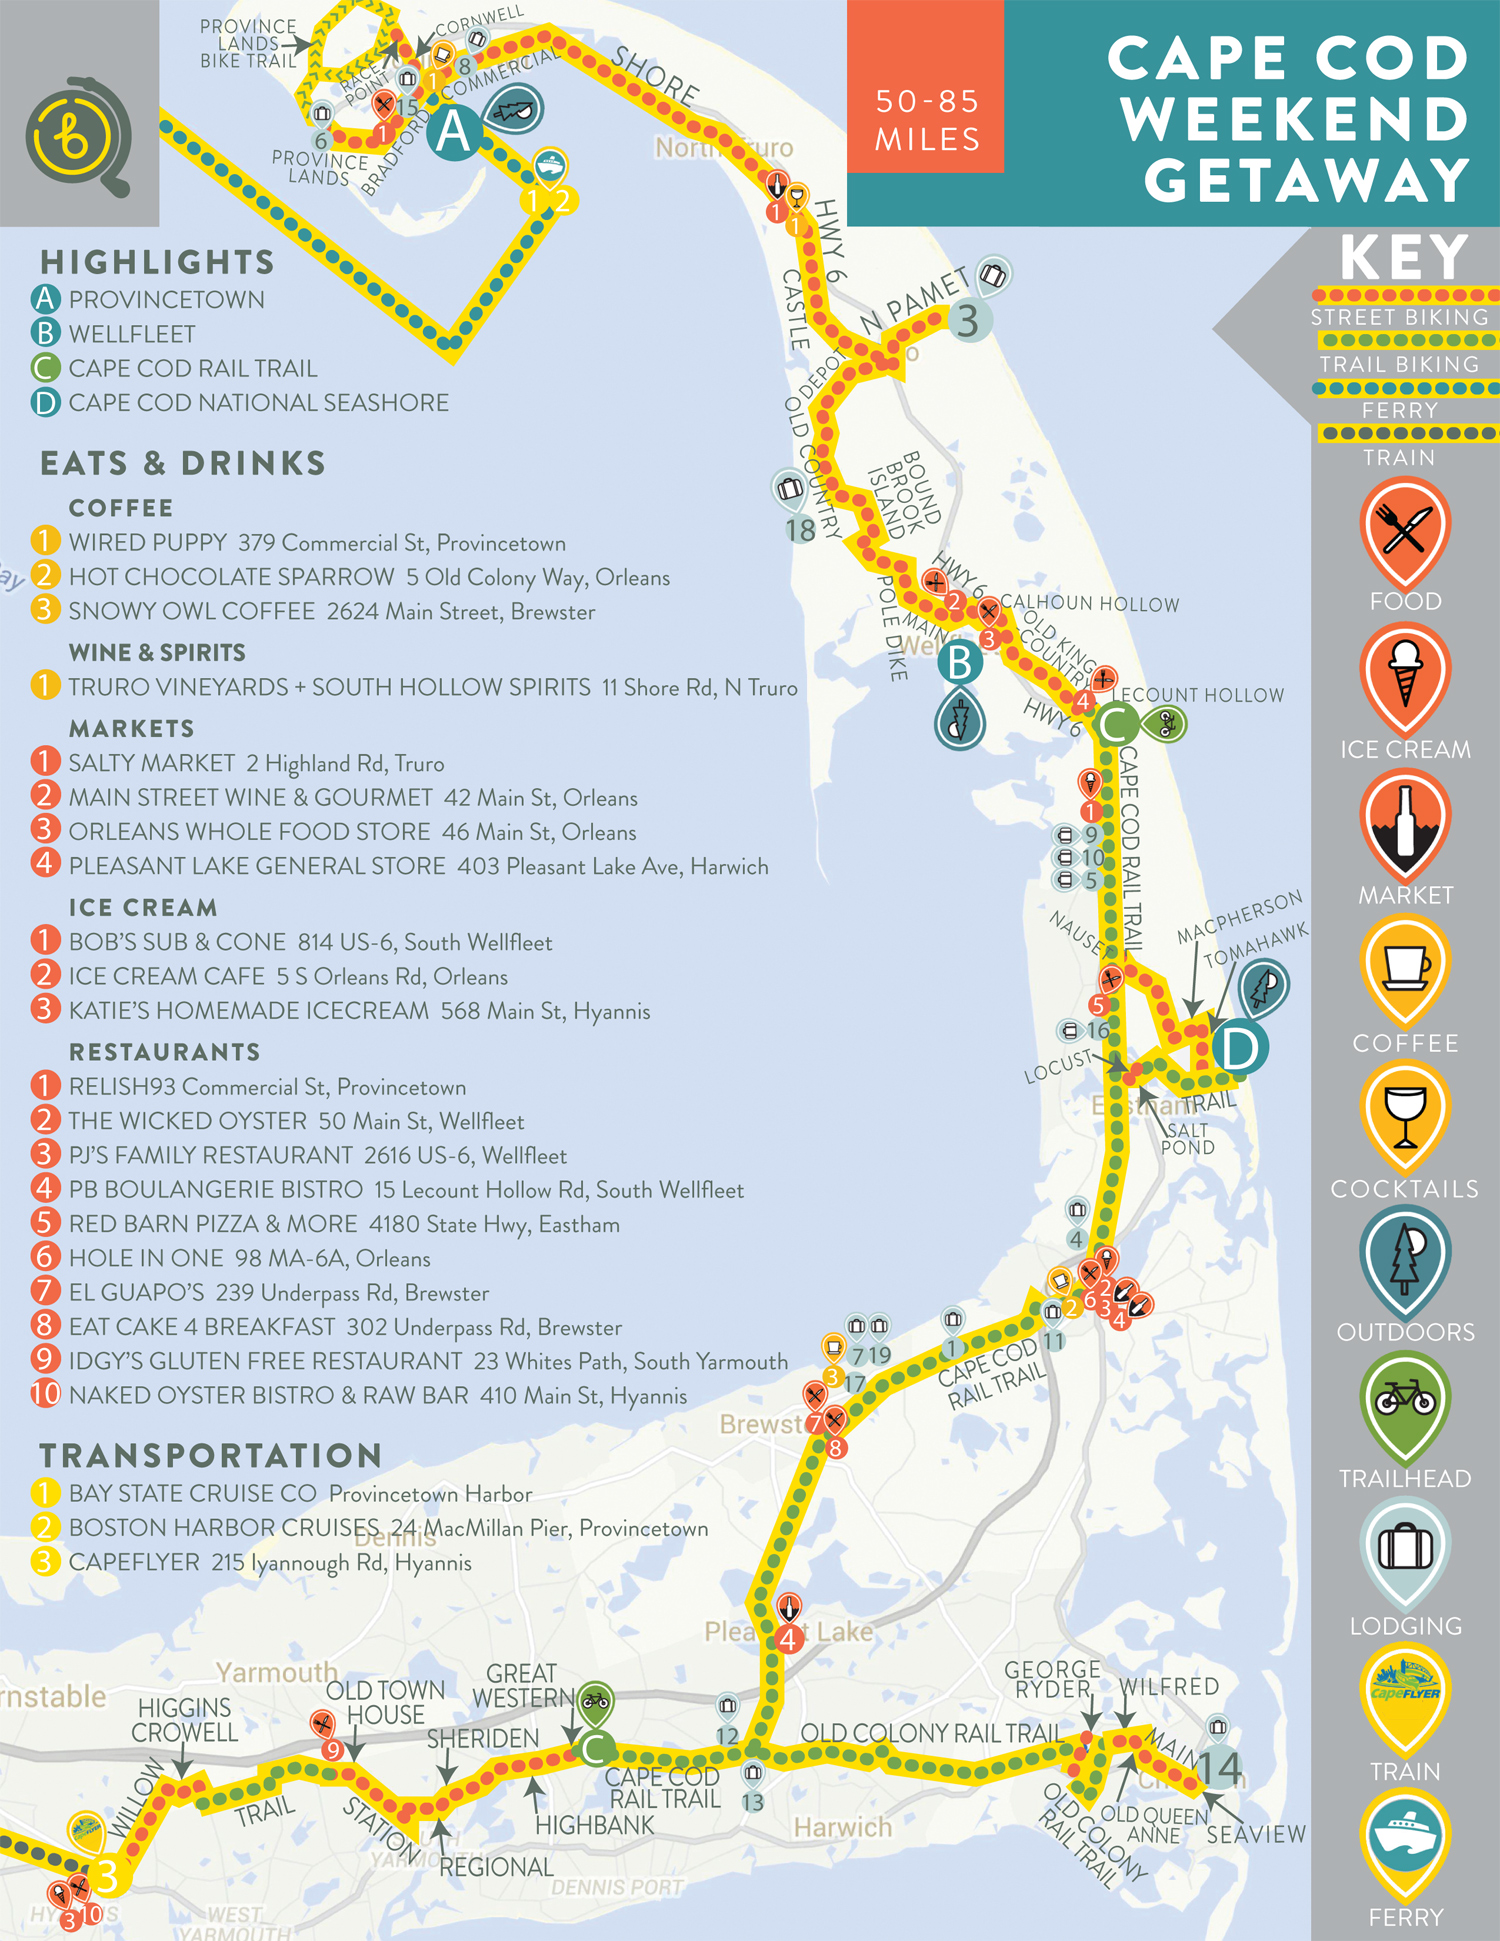 Cape Cod Weekend Getaway Map